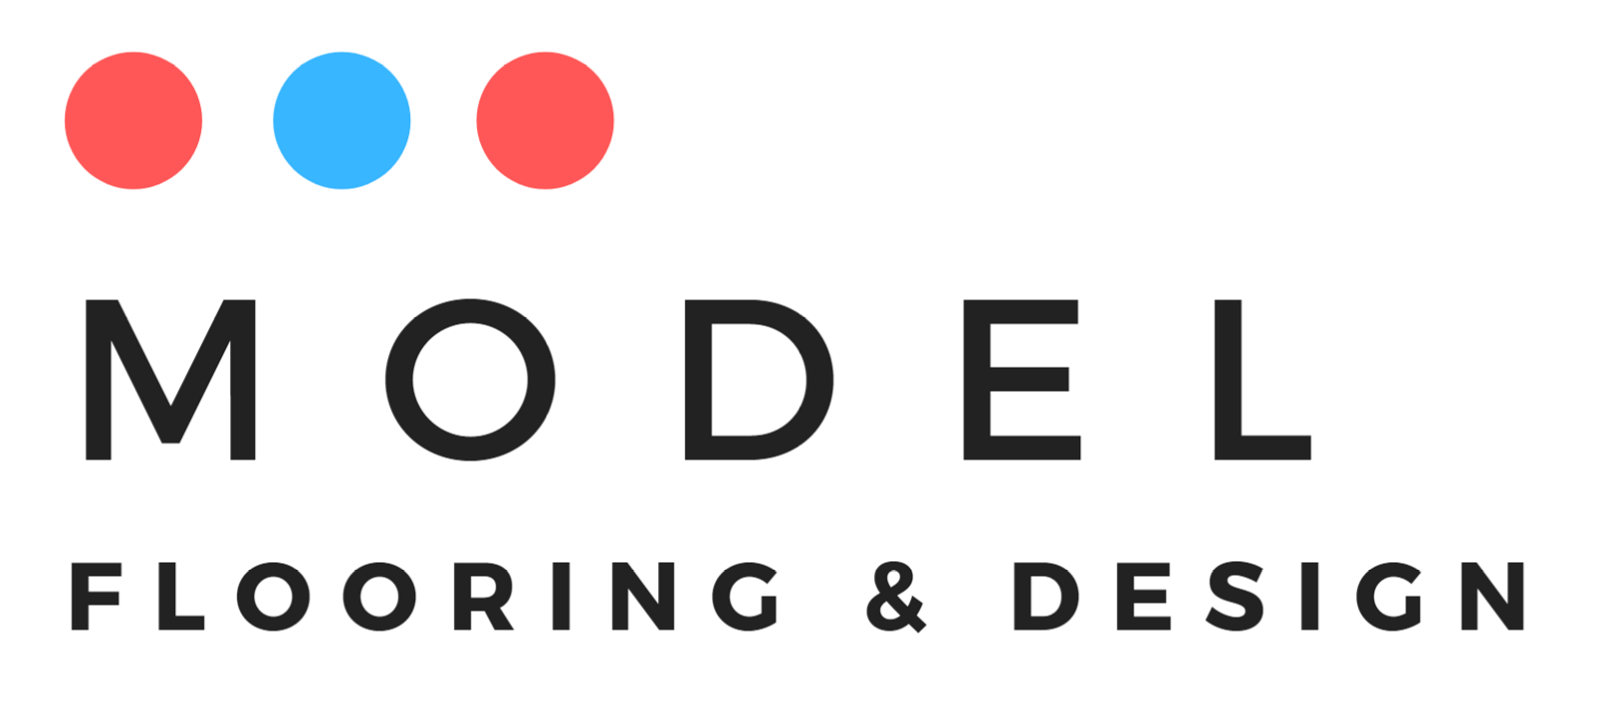 Model Flooring & Design LOGO